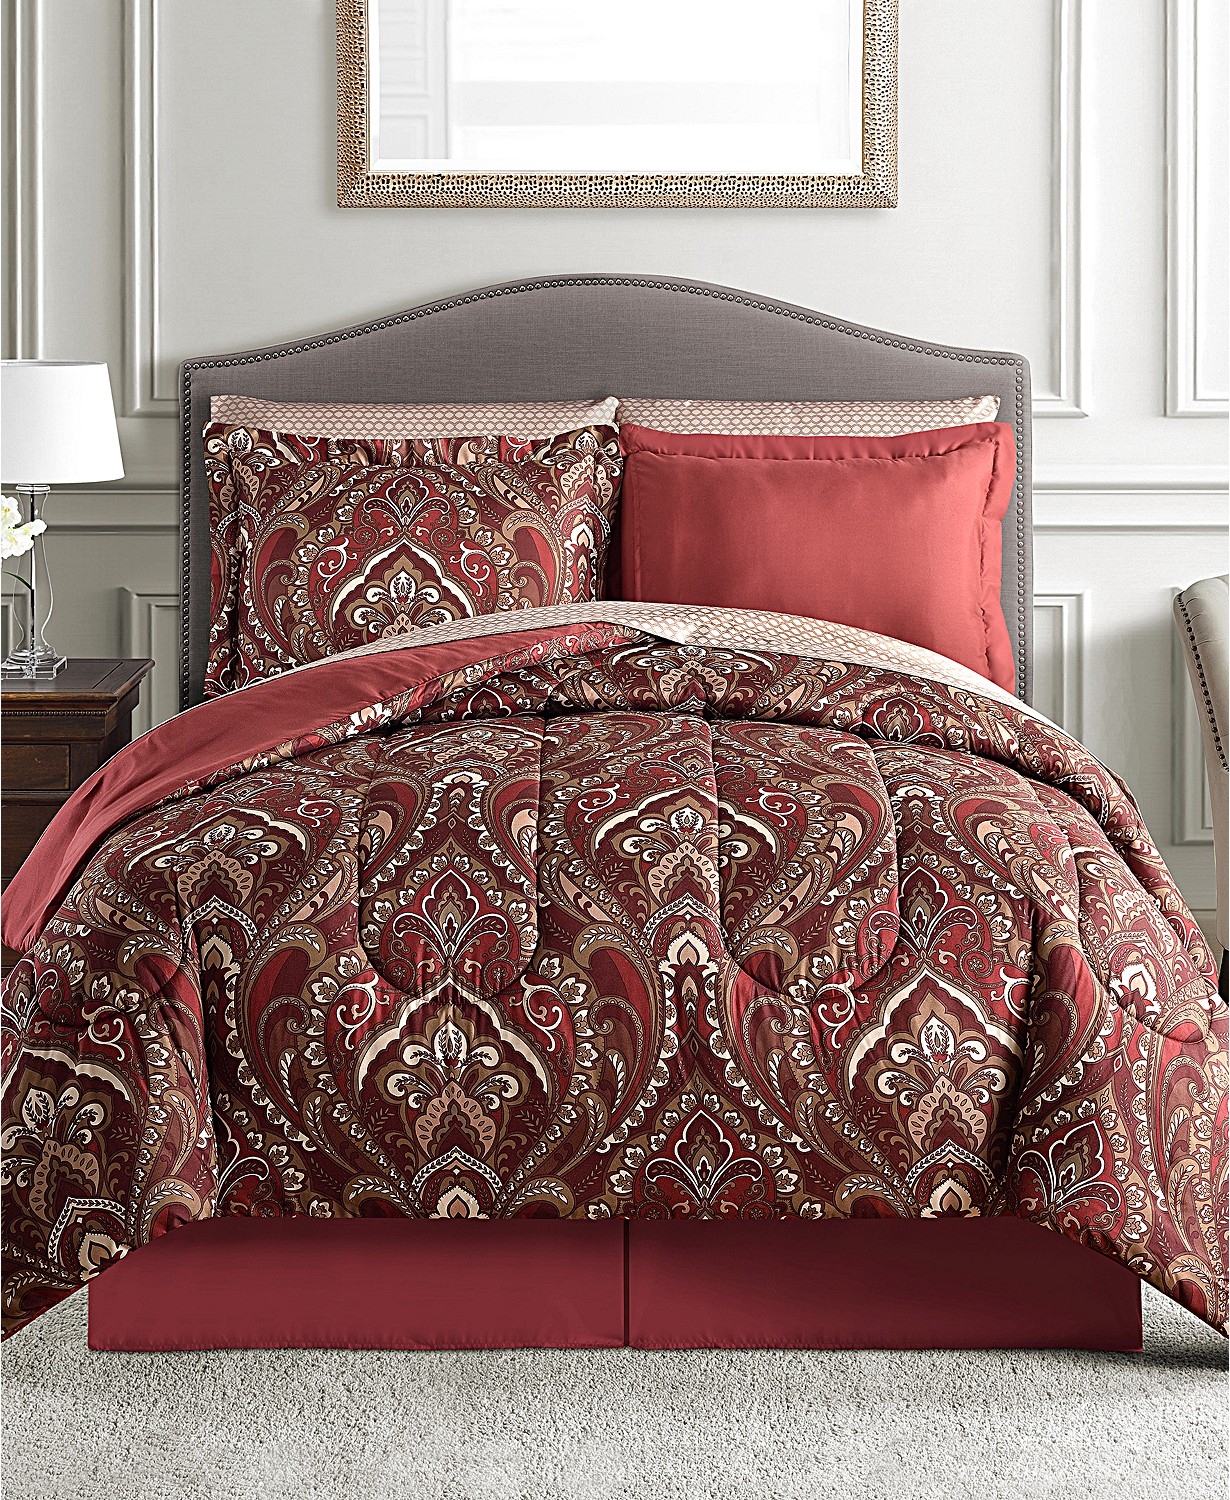 Normally $100, this comforter set is 72 percent off with code VIP (Photo via Macy's)